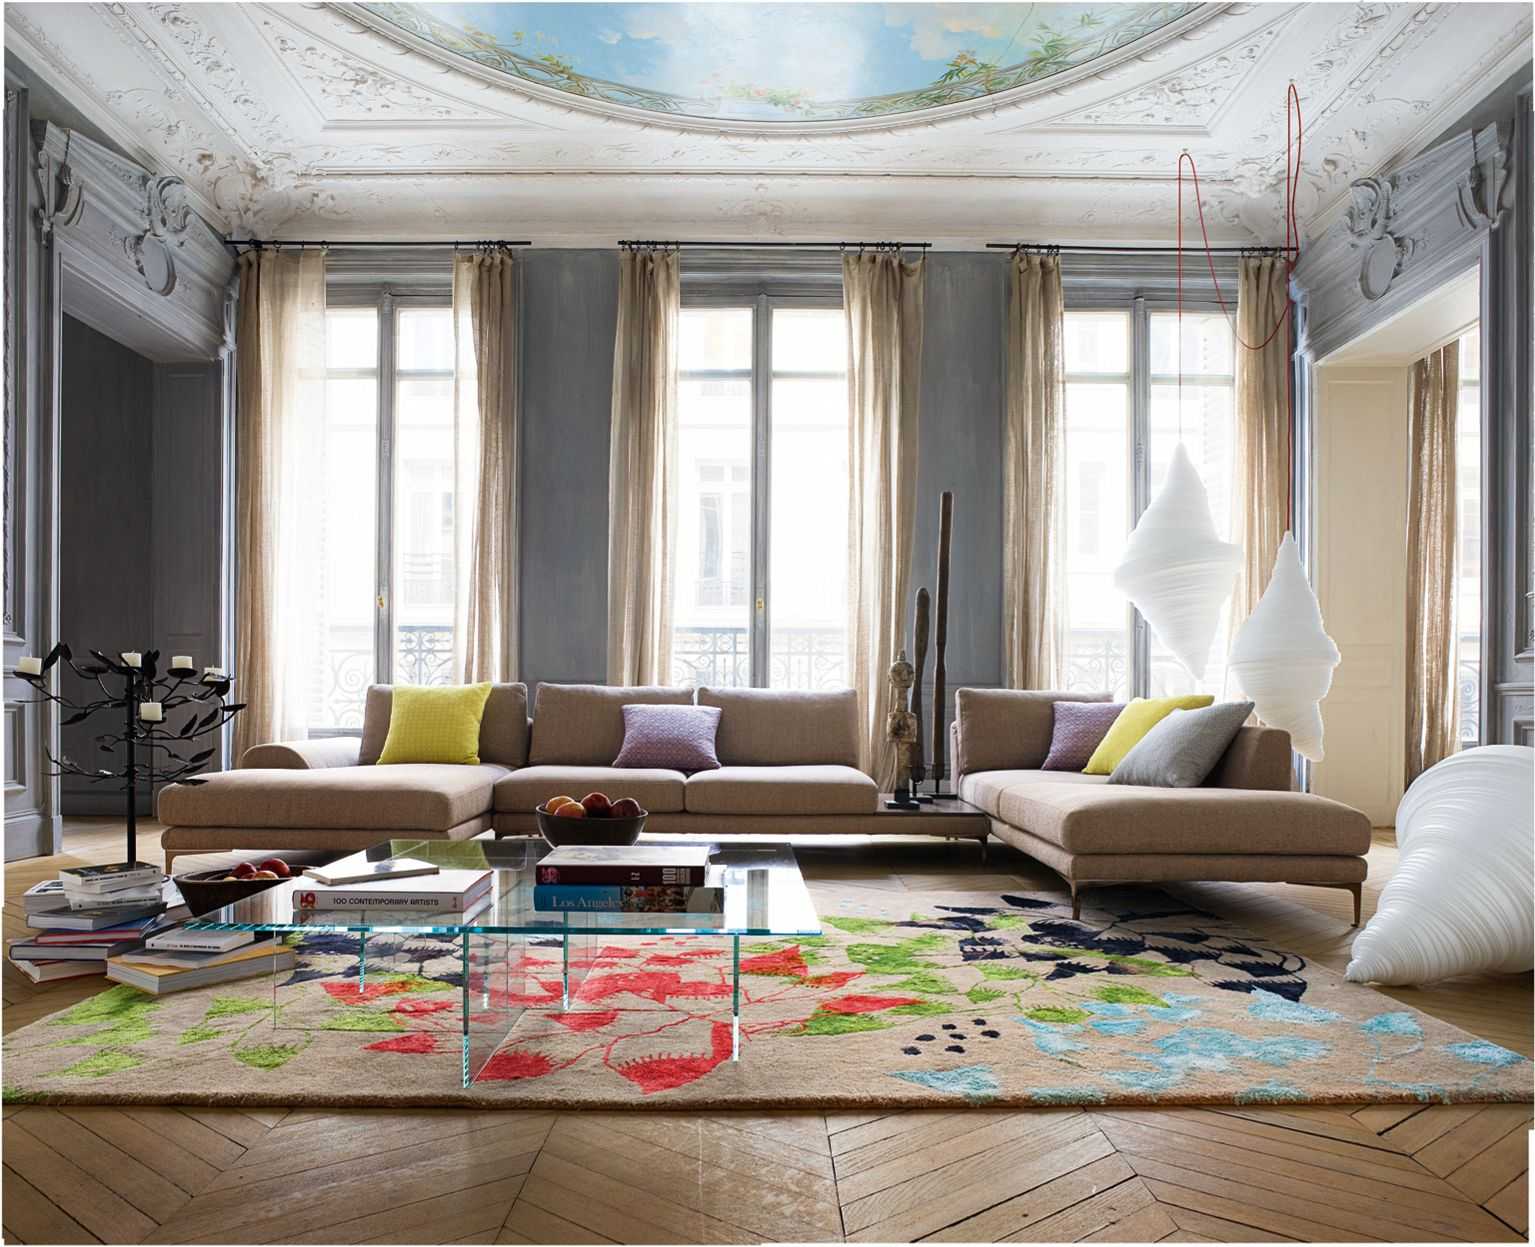 exclamation canap composable par lments - Tapis Roche Bobois